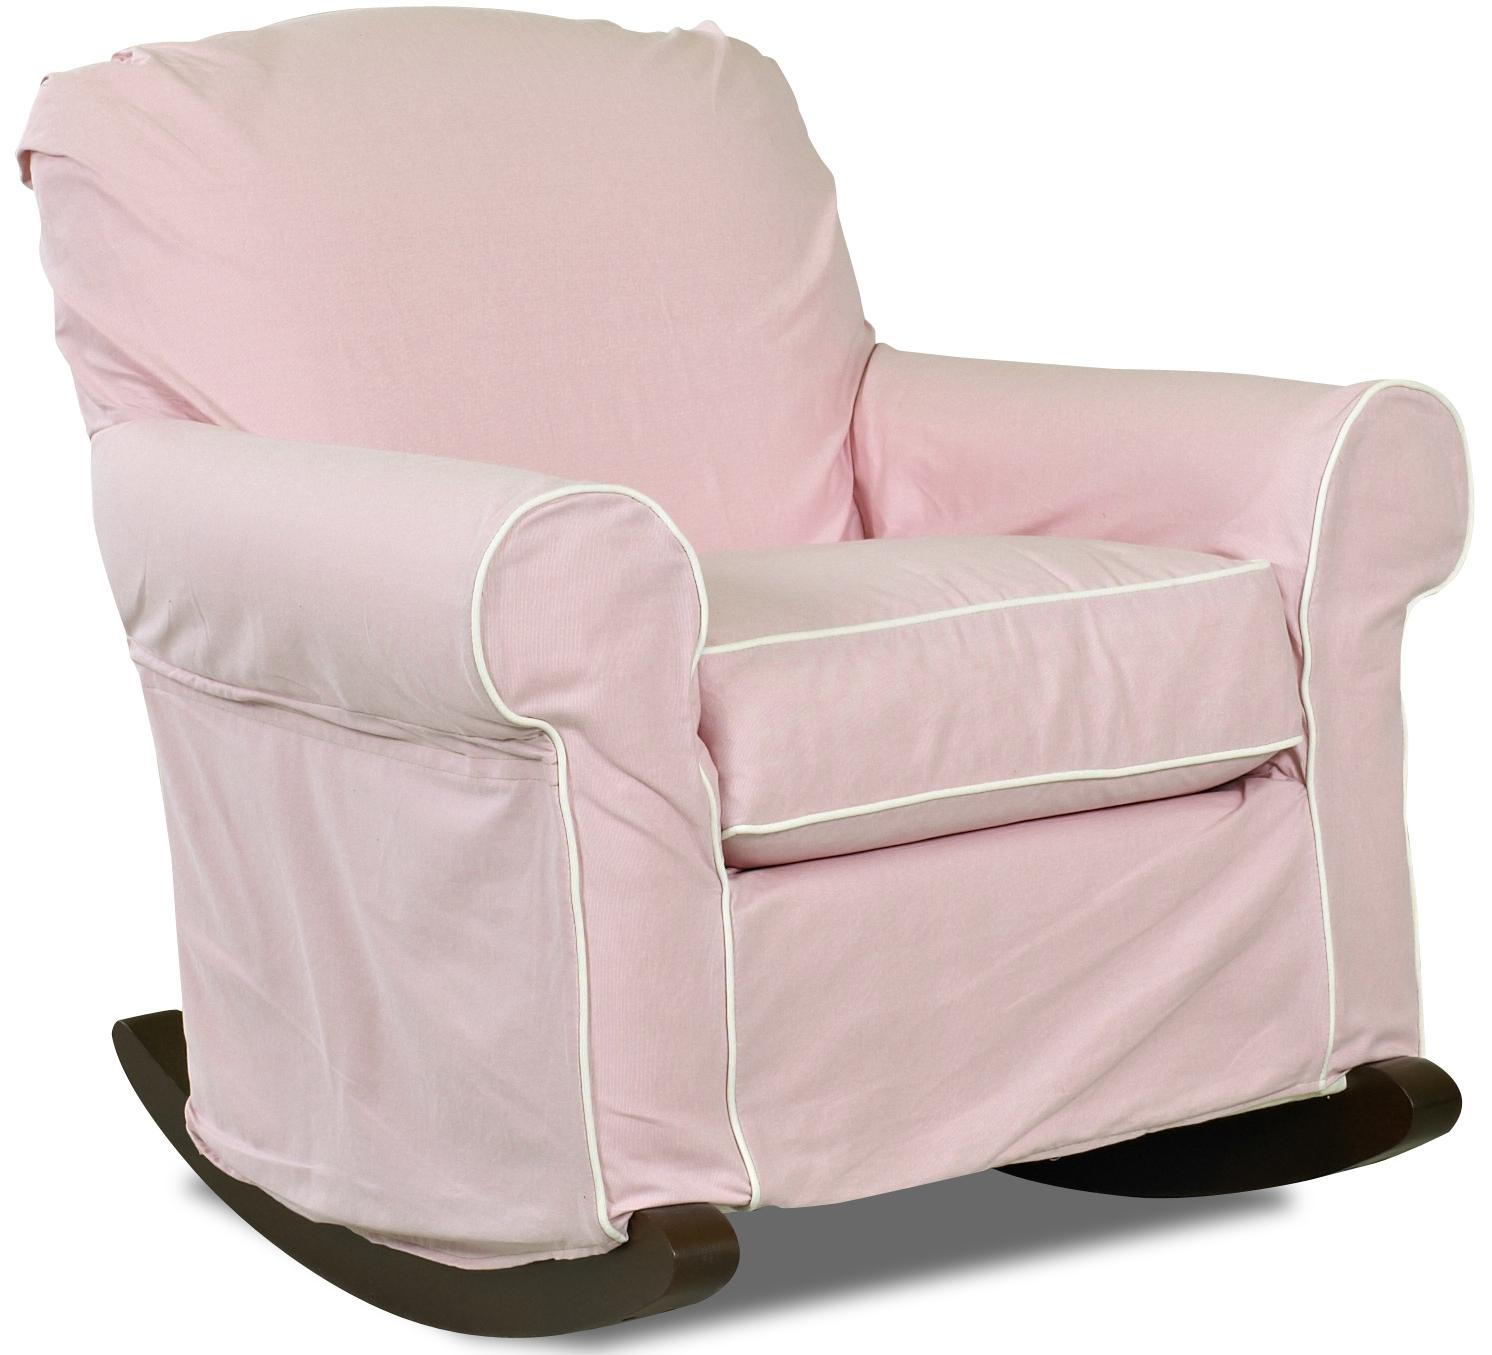 Chairs and Accents Old Town Upholstered Rocking Chair with Slip Cover ...